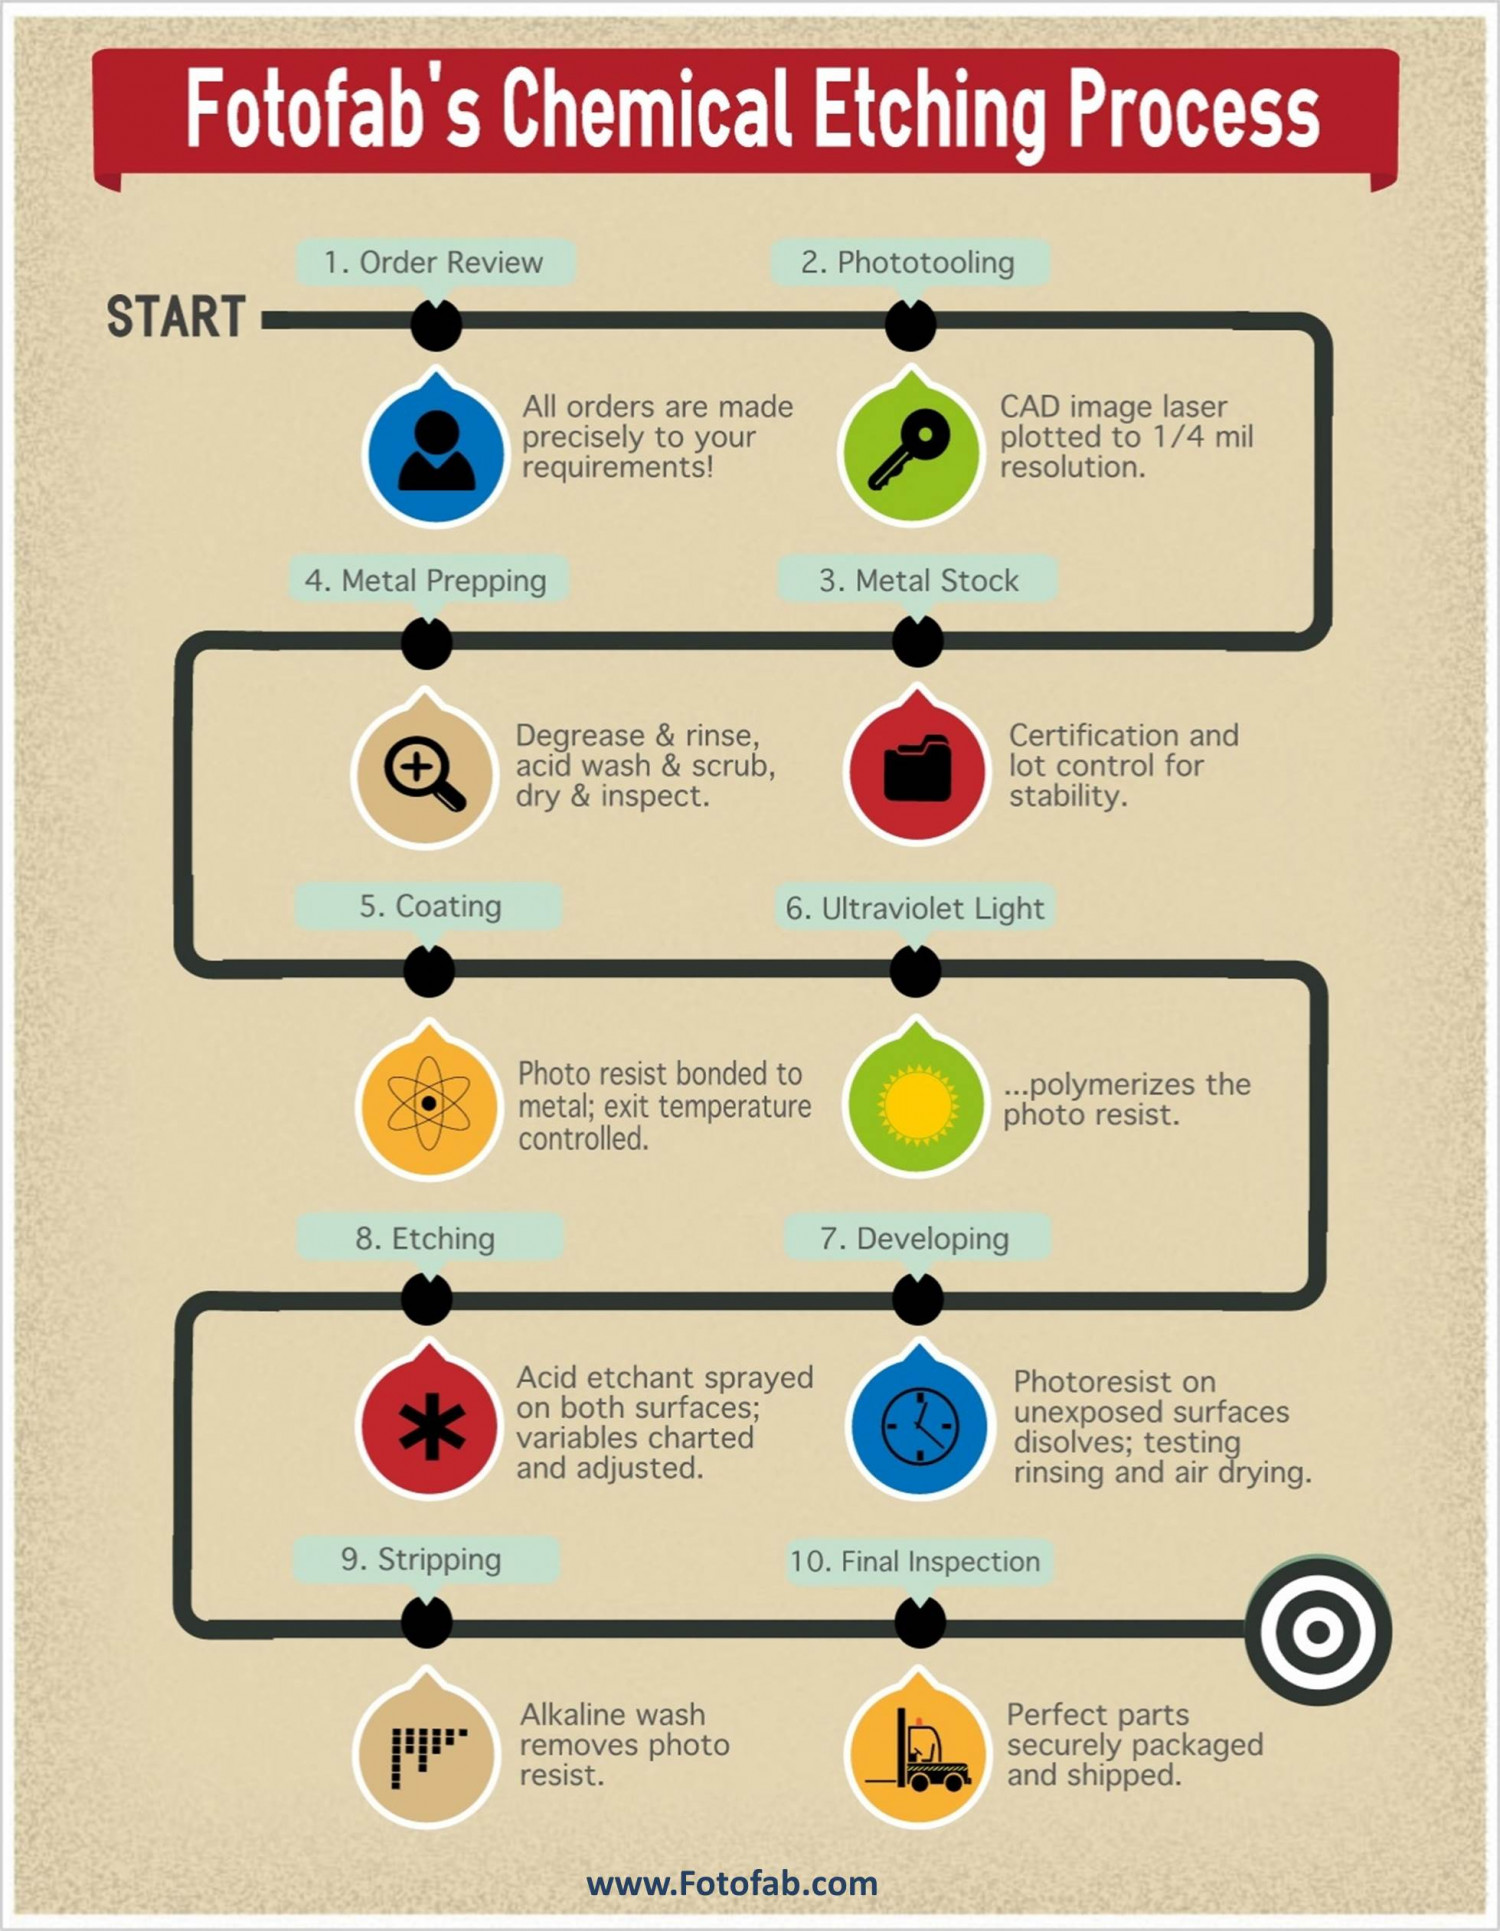 The Chemical Etching Process Infographic